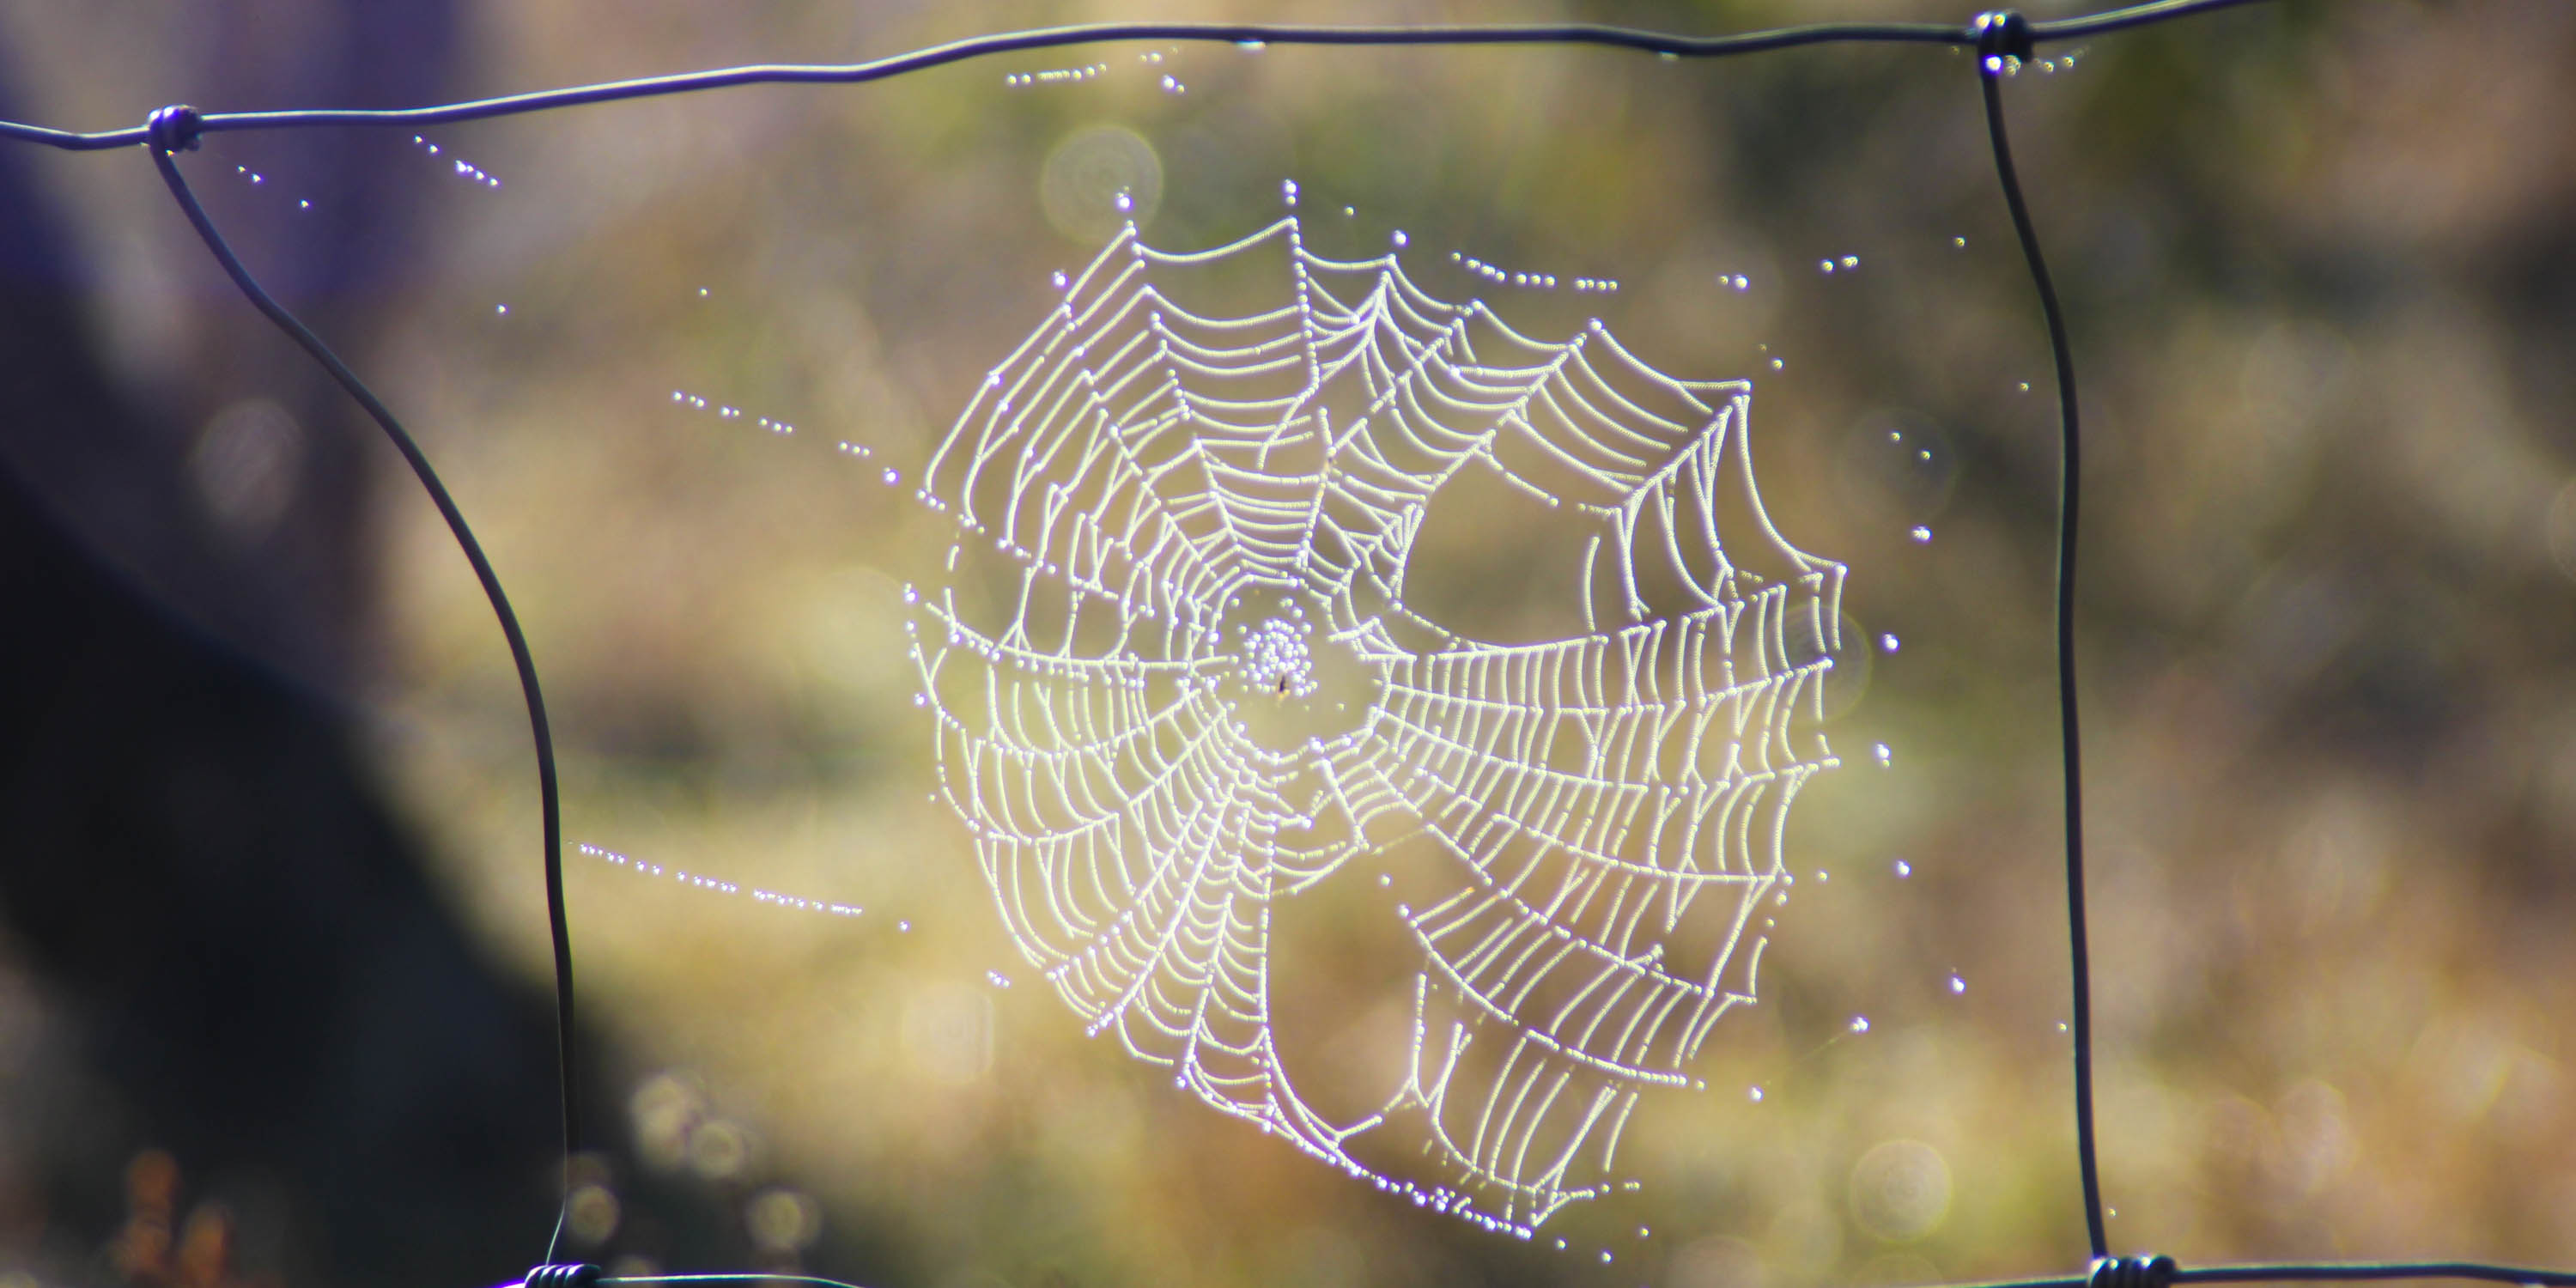 Spider Web with Dew